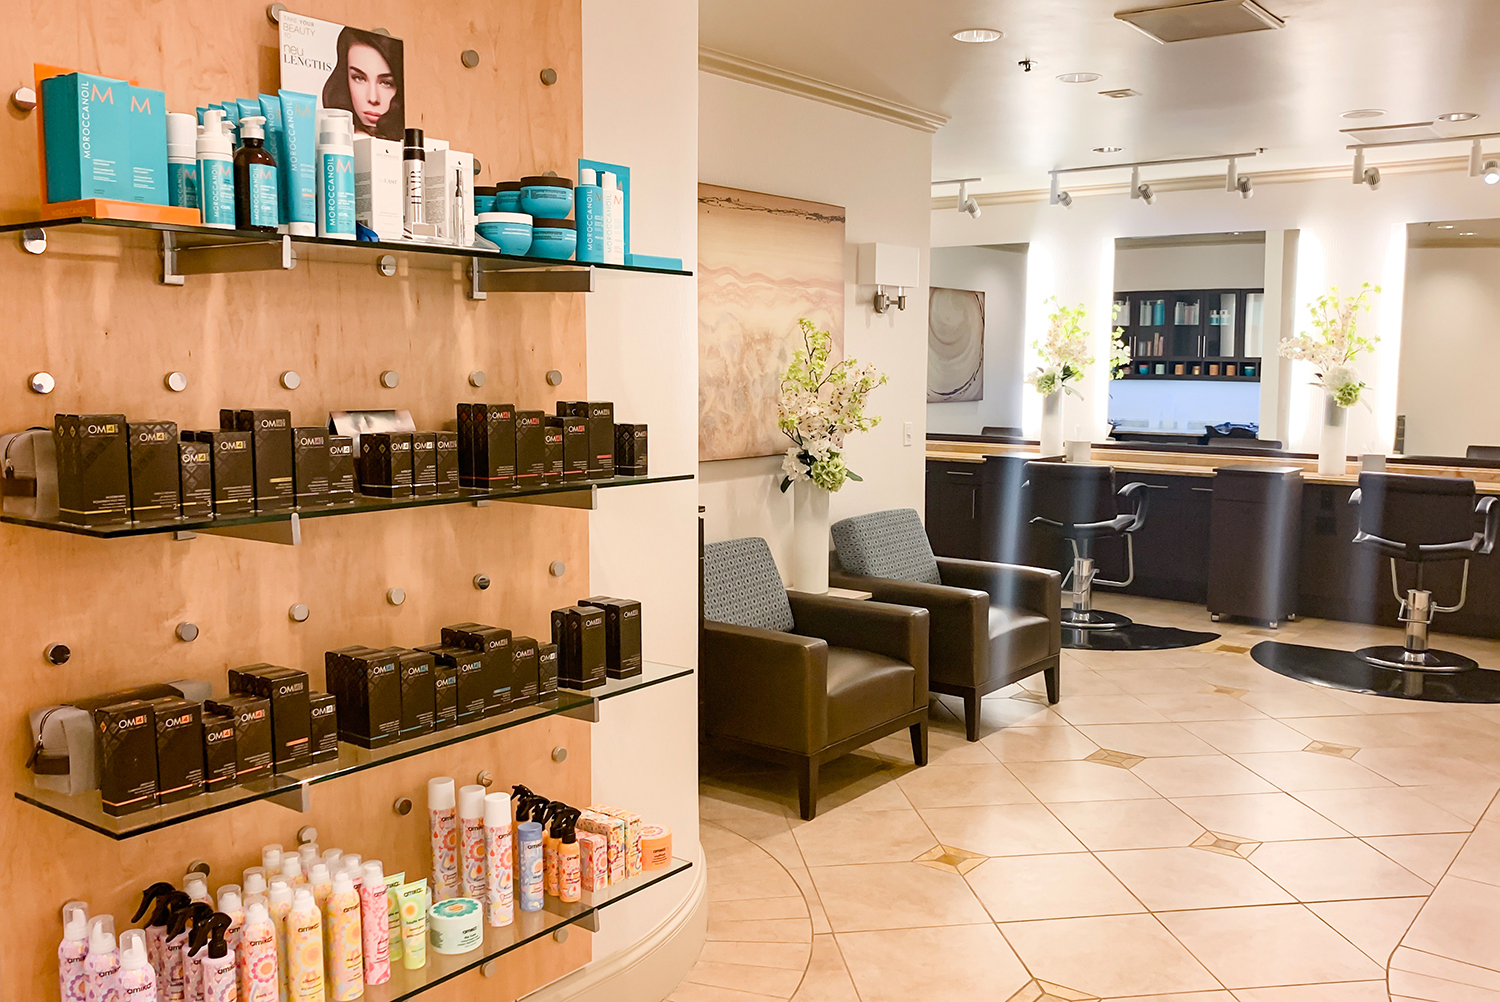 There is also a full-service hair and beauty salon.